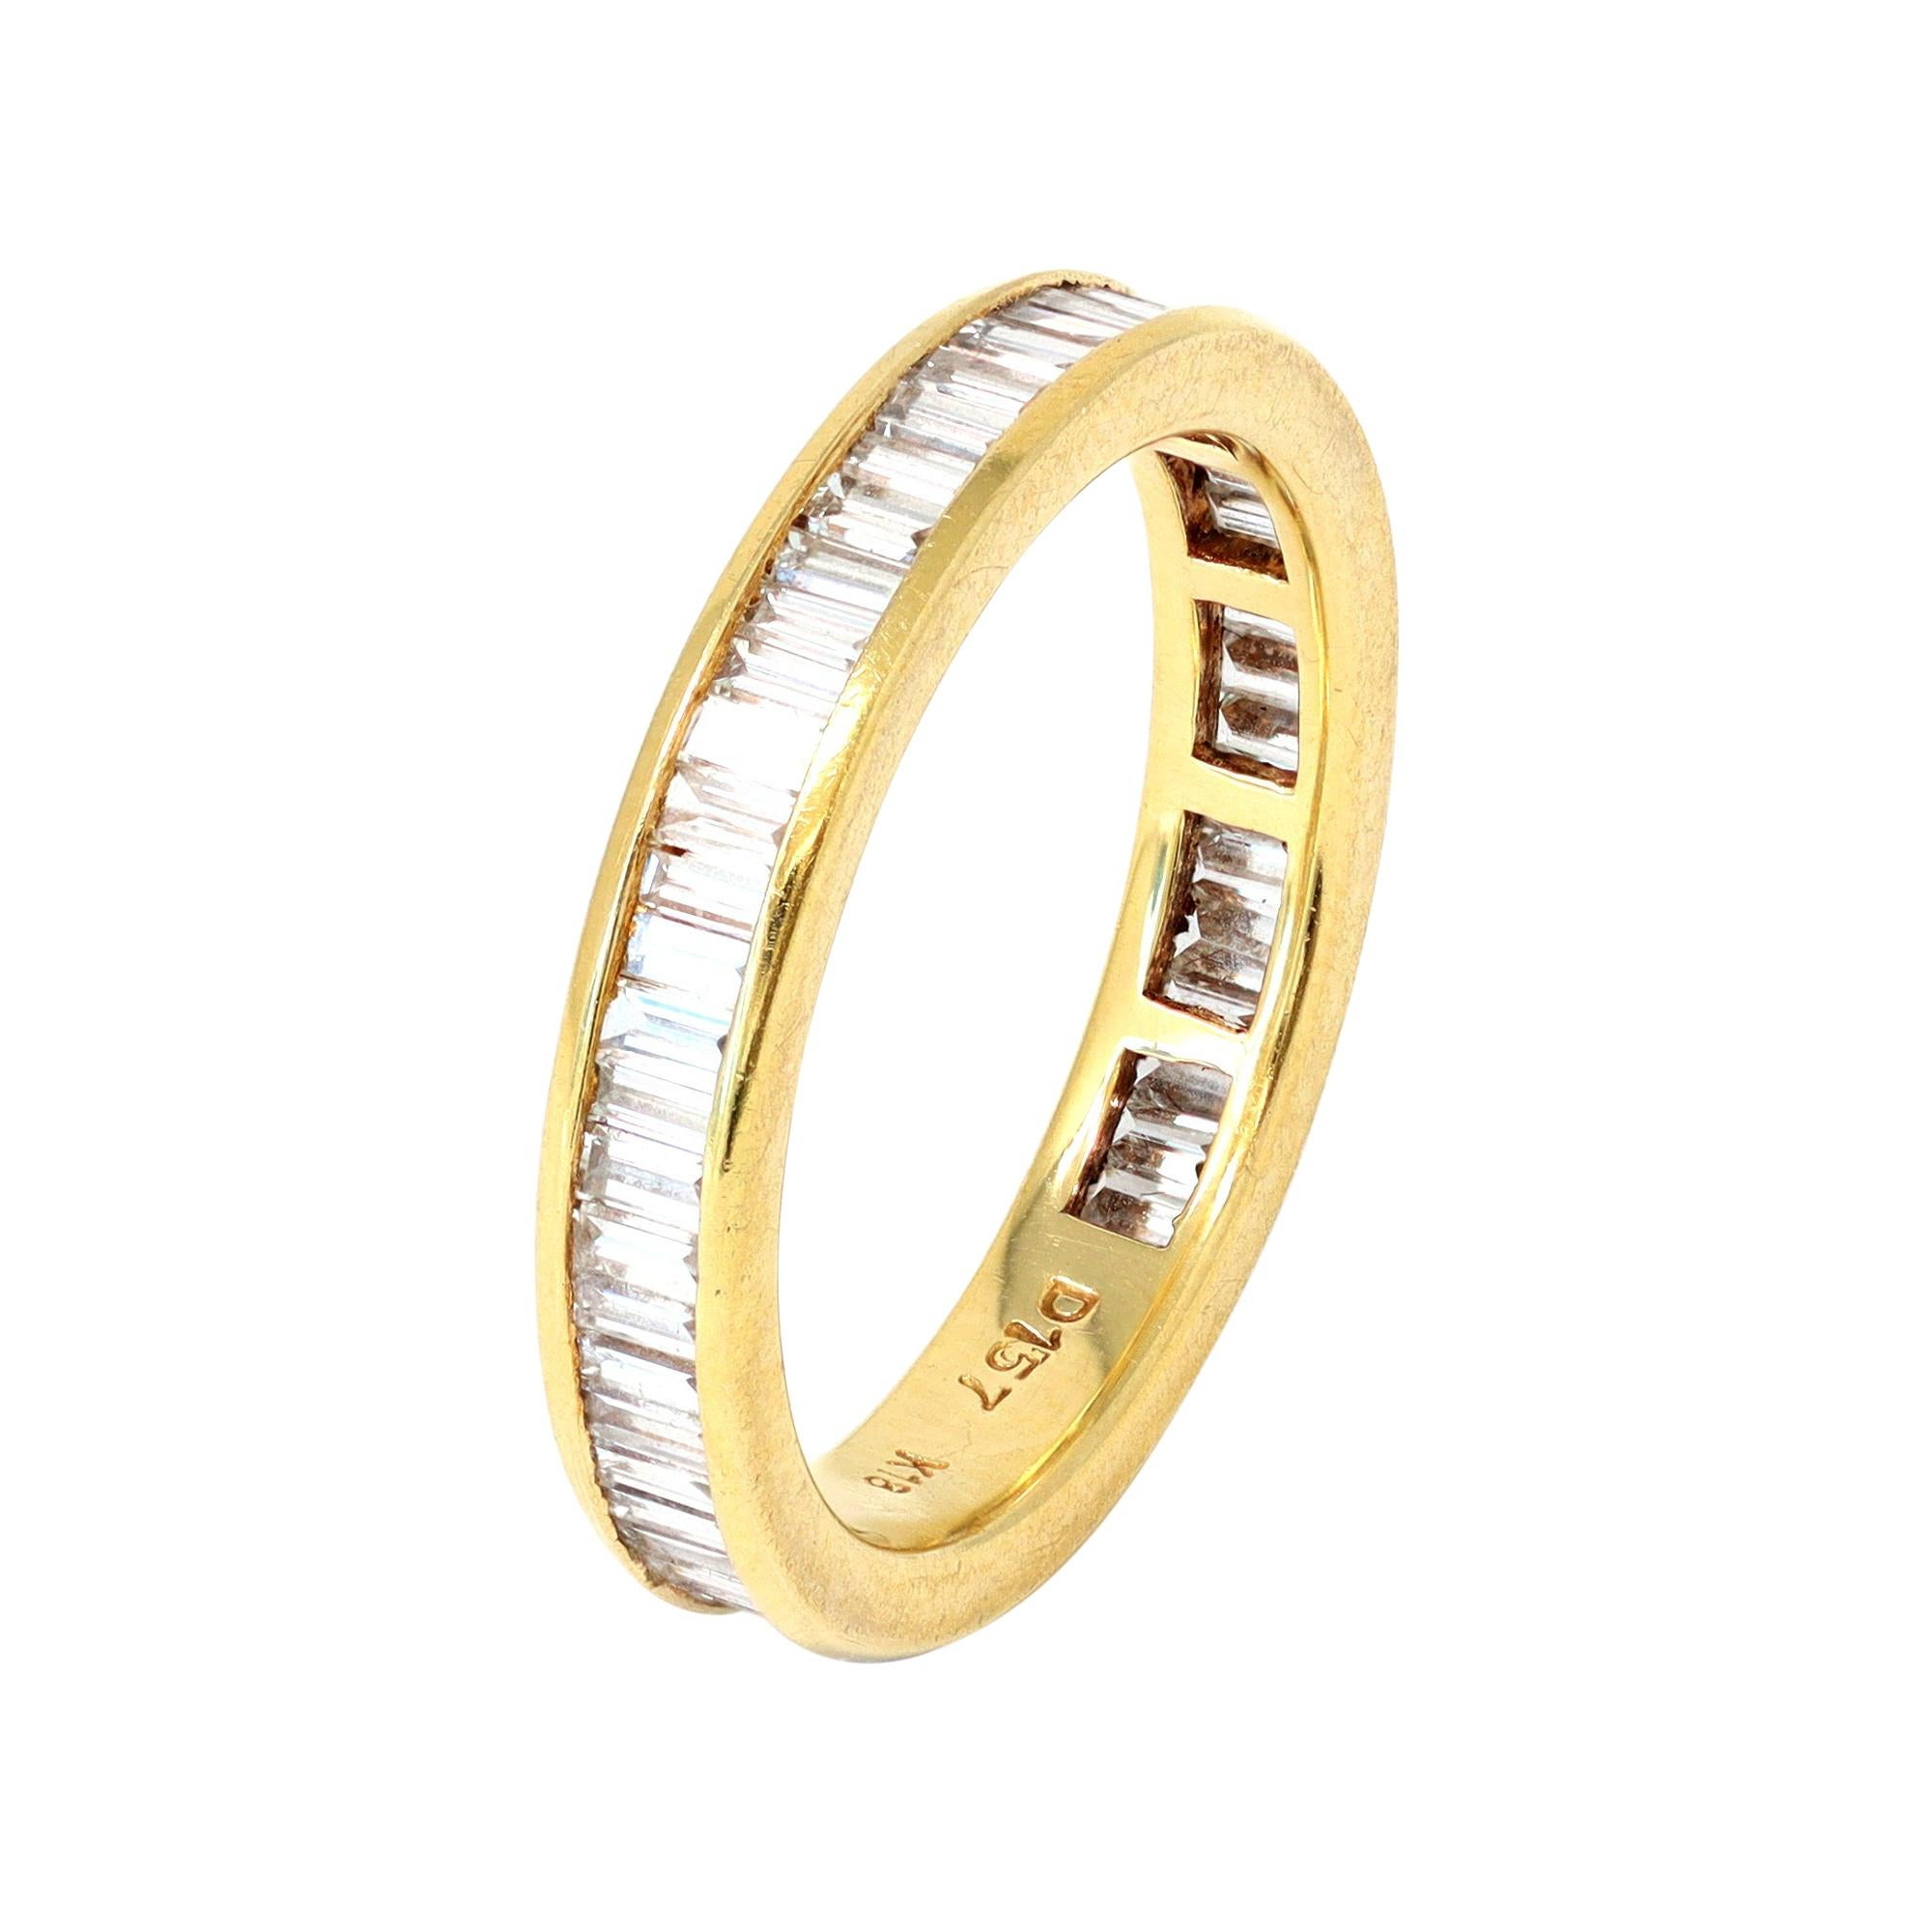 Baguette Cut Diamond Eternity Band Ring Set in 18k Yellow Gold